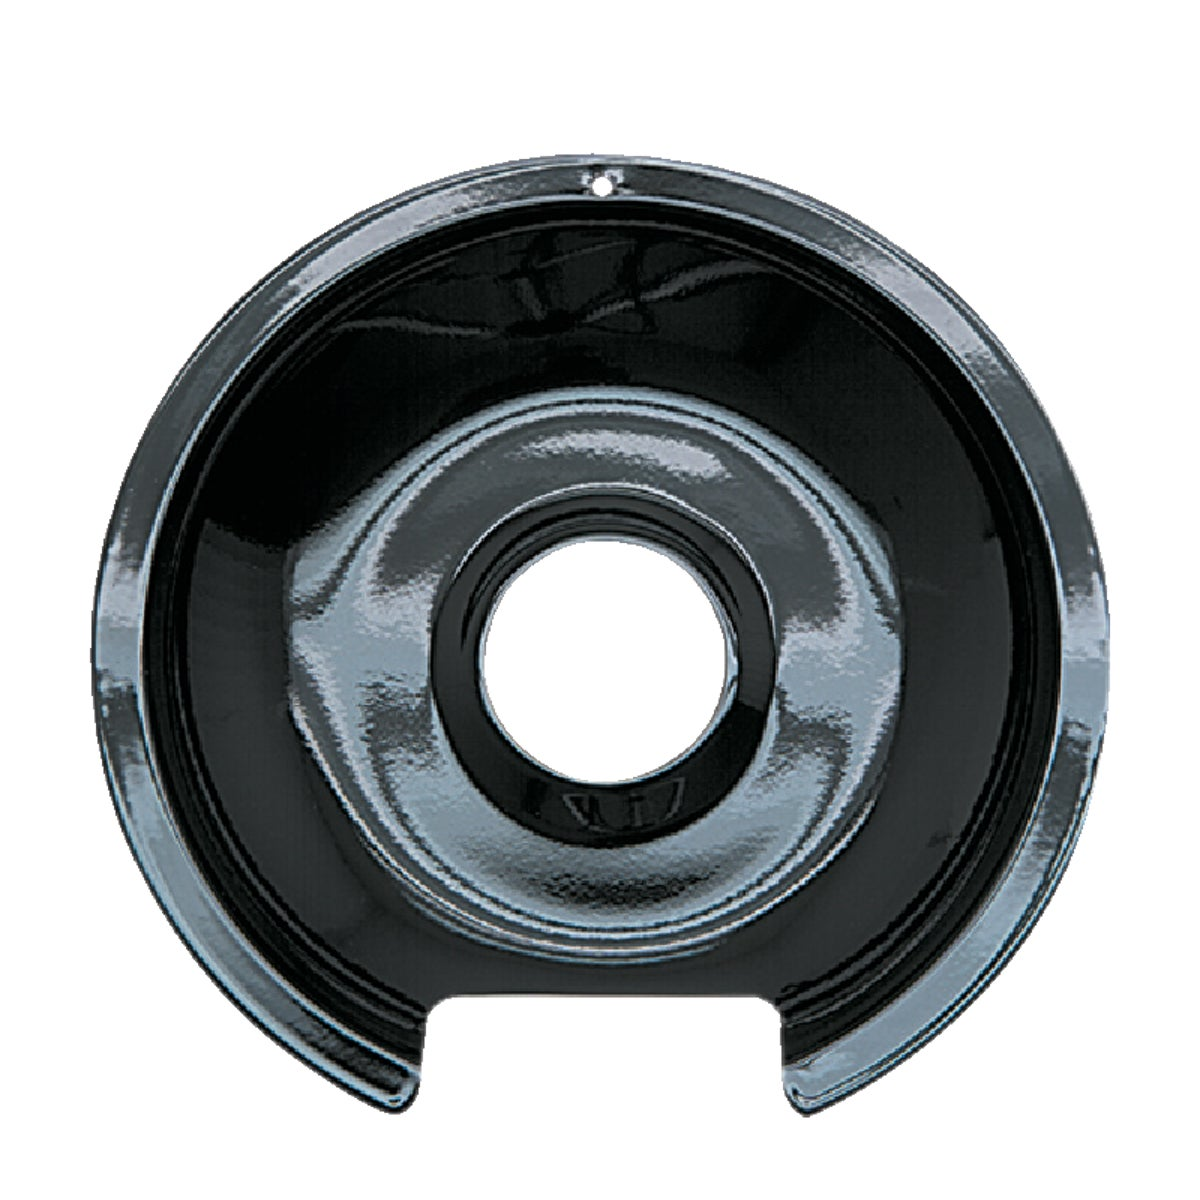 "8"" ELECTRIC DRIP PAN - P-106 by Range Kleen Mfg Inc"